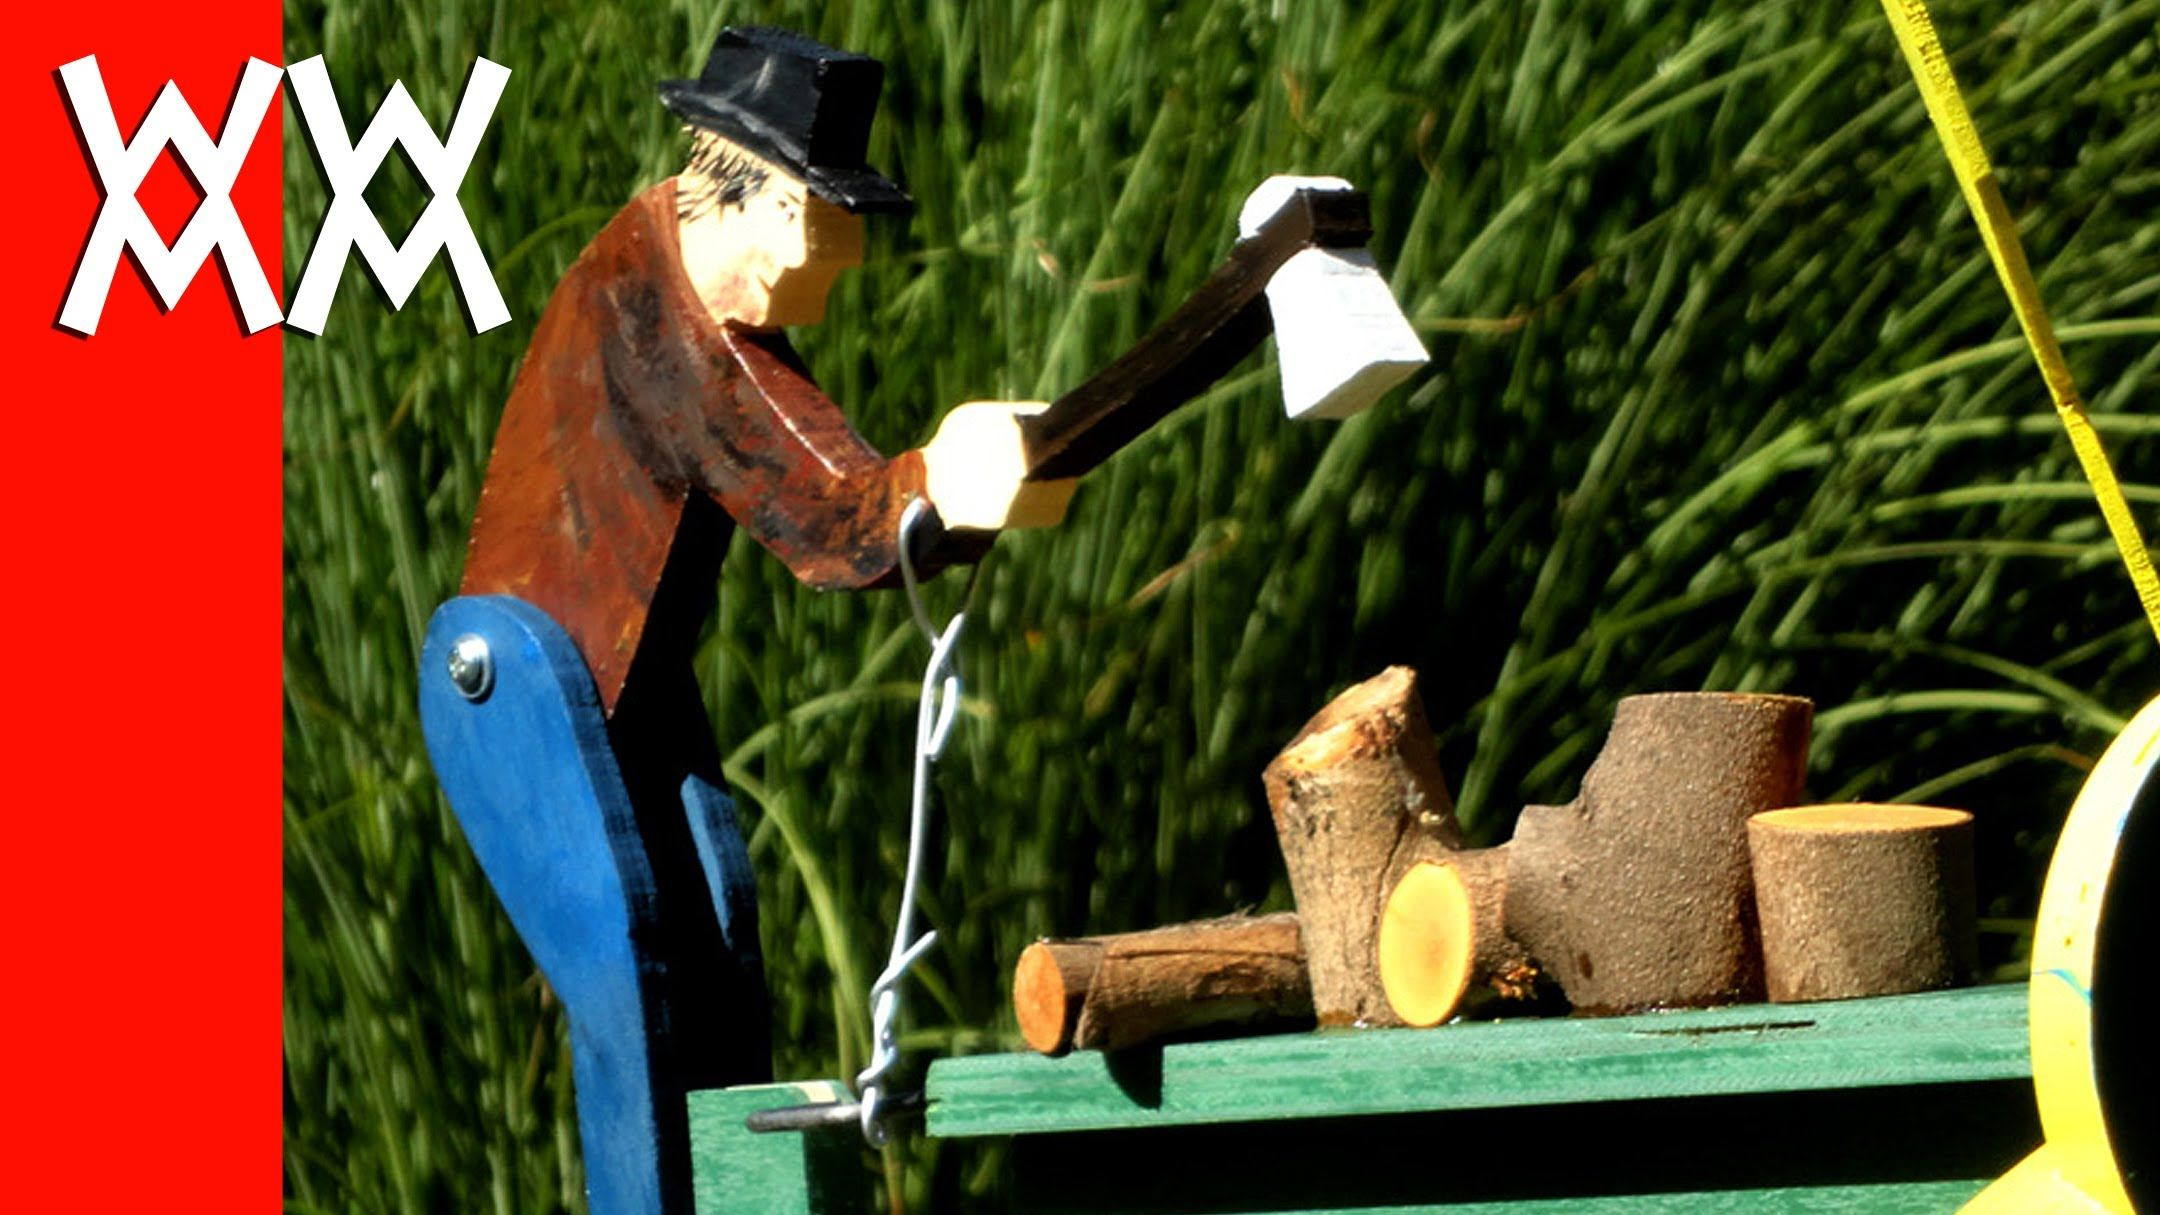 Make An Easy Wood Whirligig Free Pdf Containing Templates By Steve Ramsey Via Youtube Whirligigs Patterns Easy Wood Whirligig